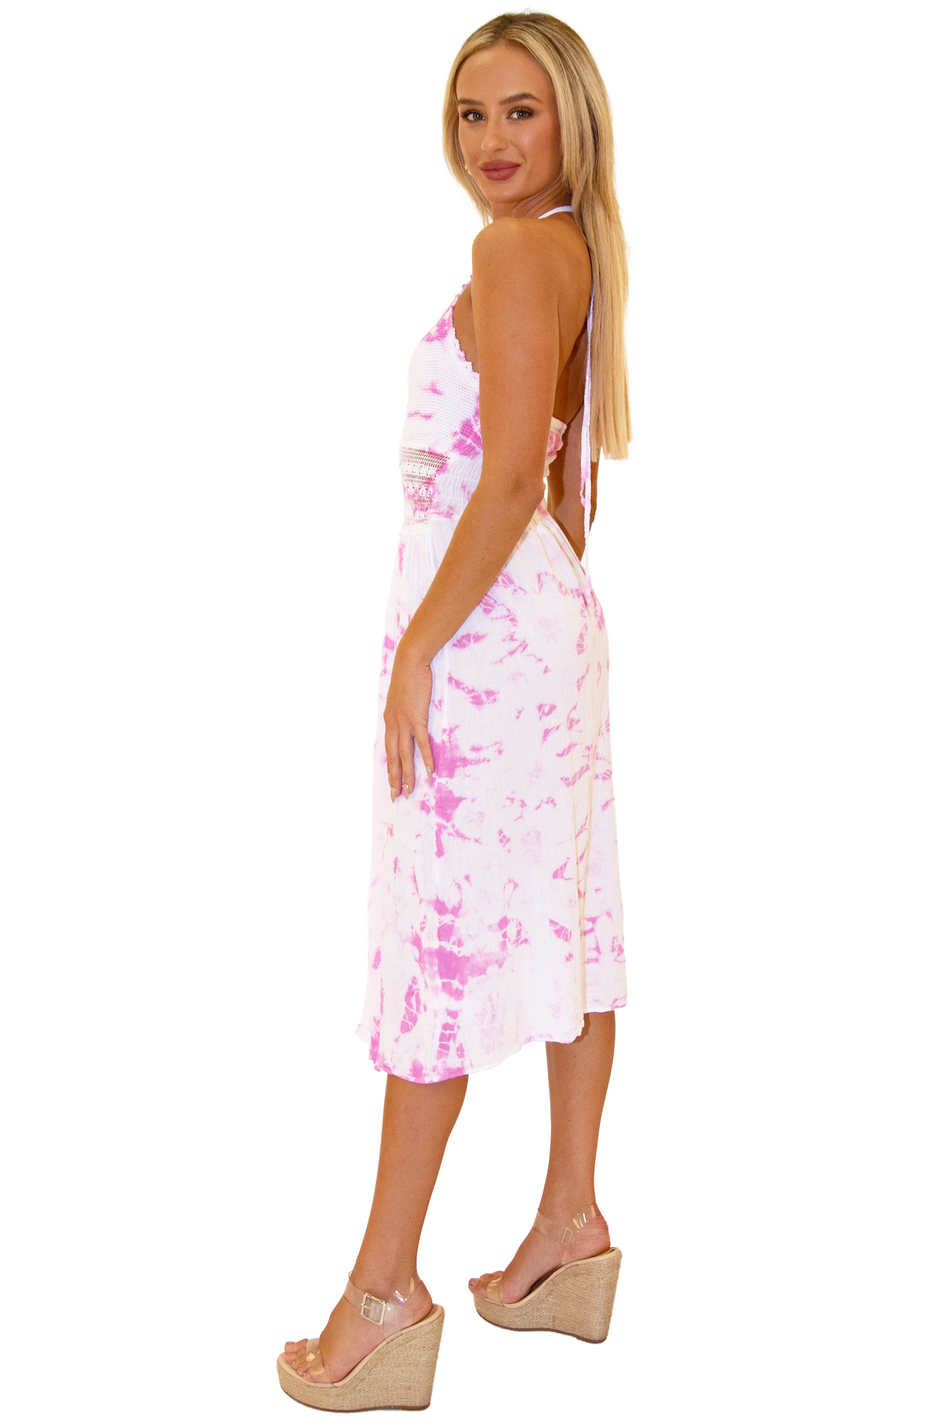 NW1273 - Tie-Dye Pink Cotton Dress